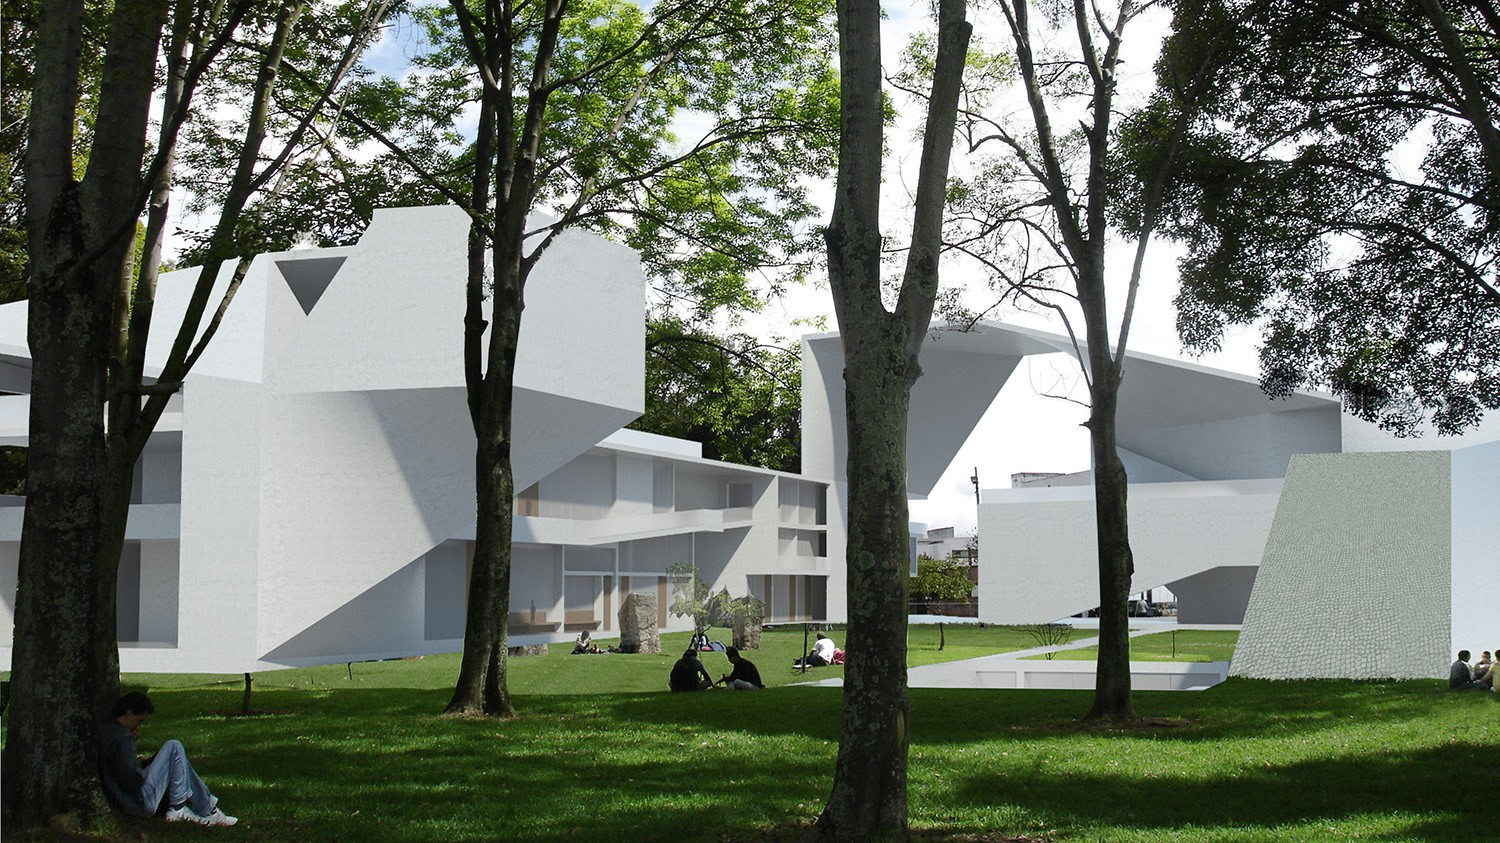 https://stevenholl.sfo2.digitaloceanspaces.com/uploads/projects/project-images/StevenHollArchitects_Bogota_EASTVIEW_WH.jpg